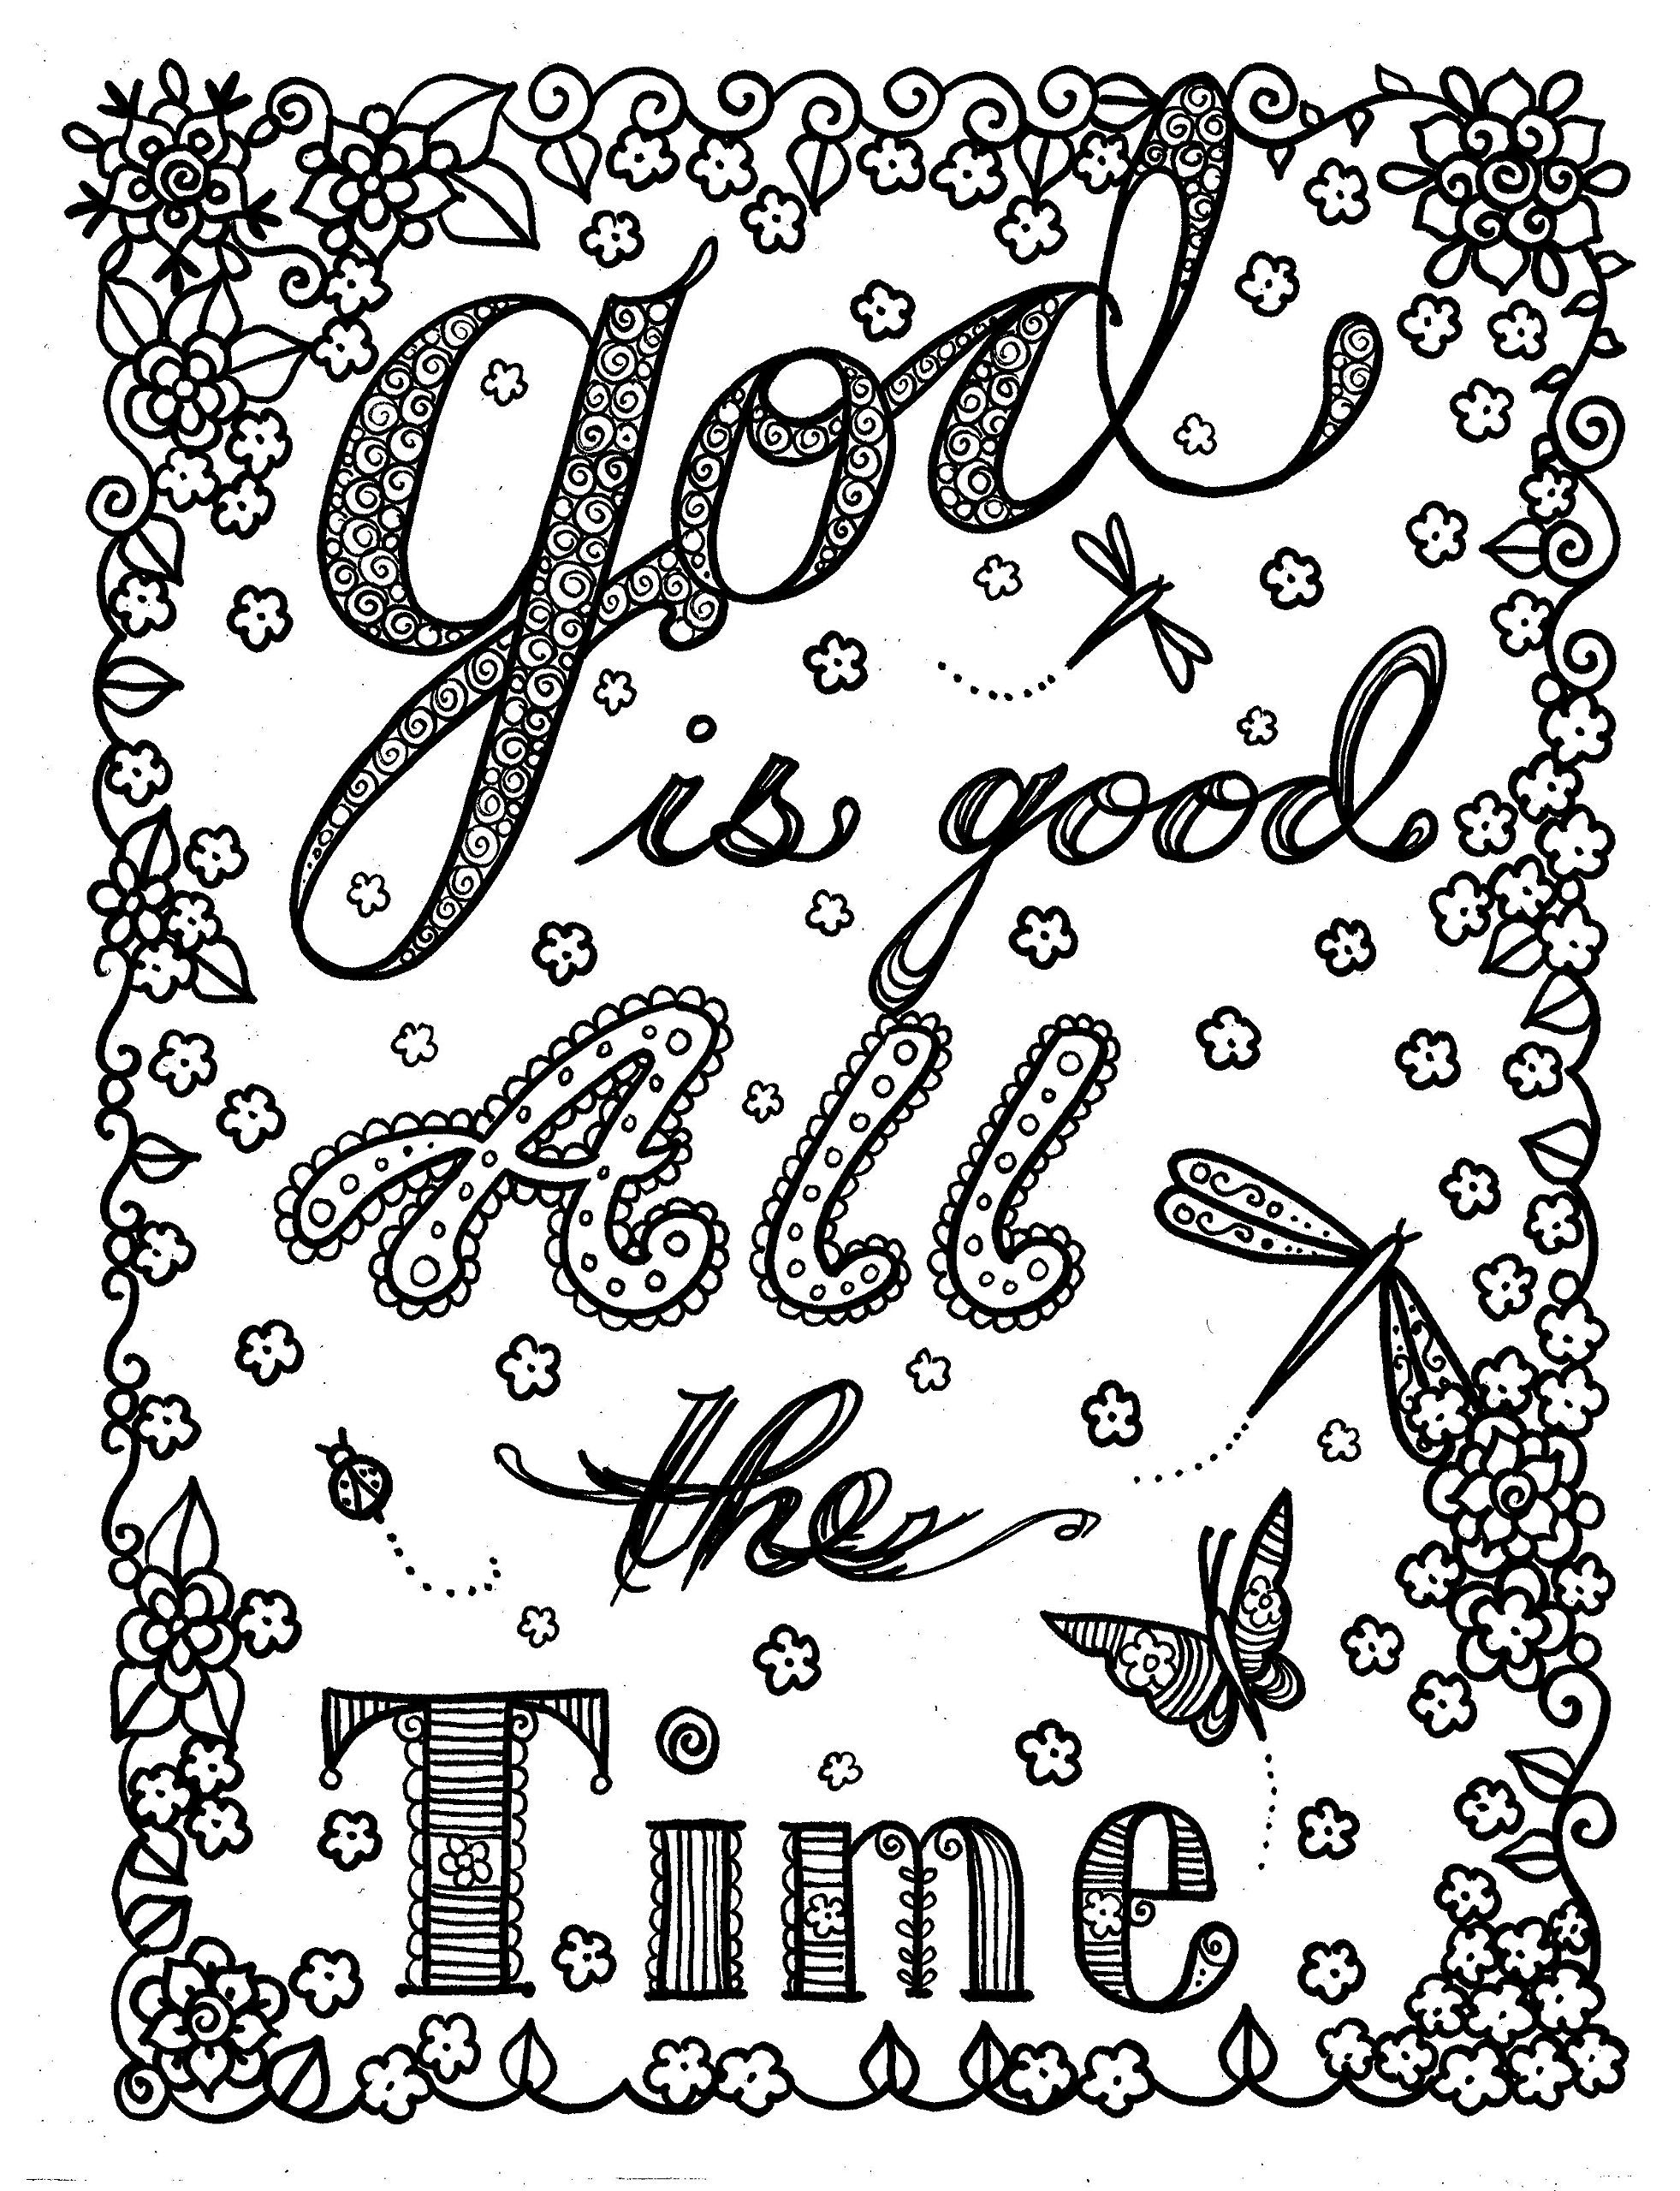 God Is Good Inspirational Messages Of Hope Adult Coloring Book